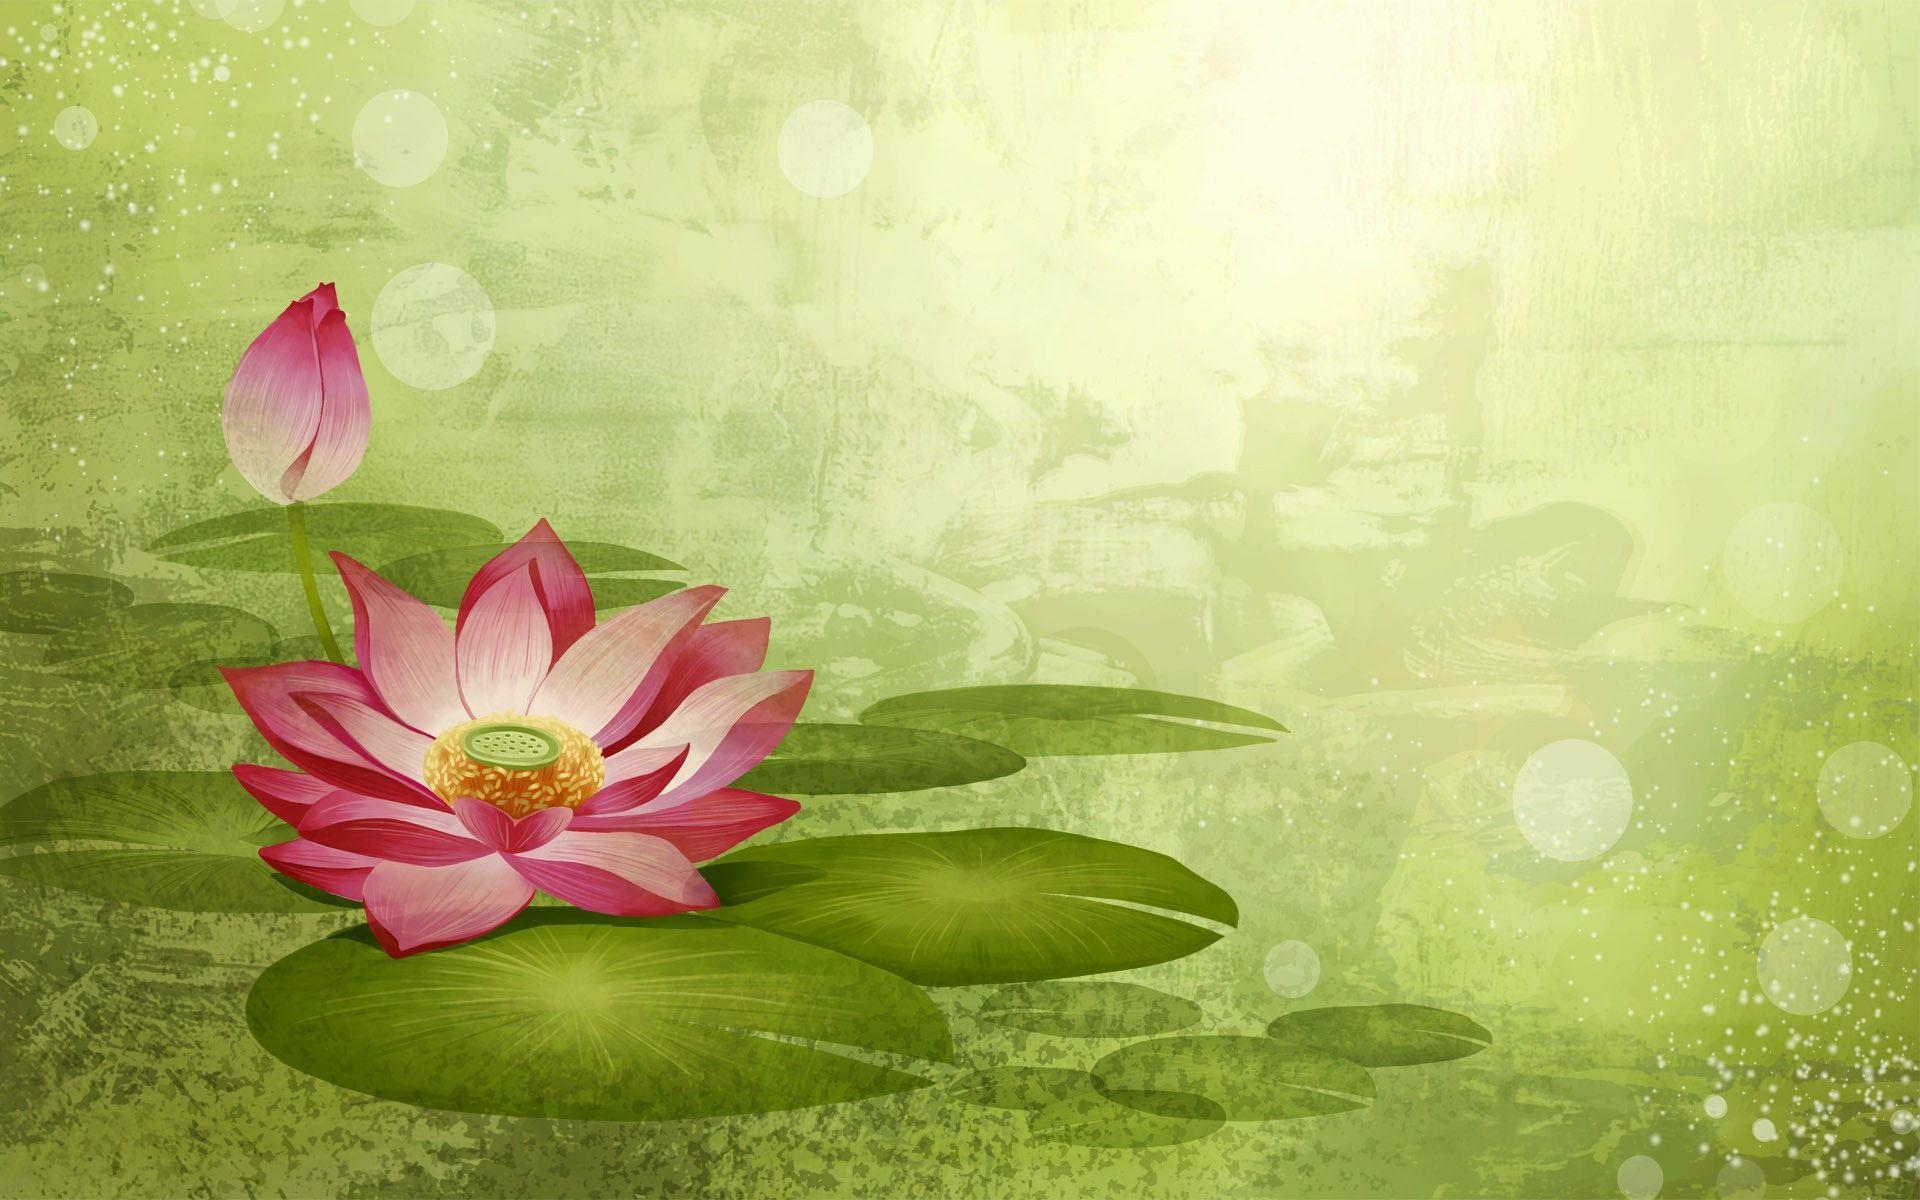 Lotus Flower Backgrounds - Wallpaper Cave